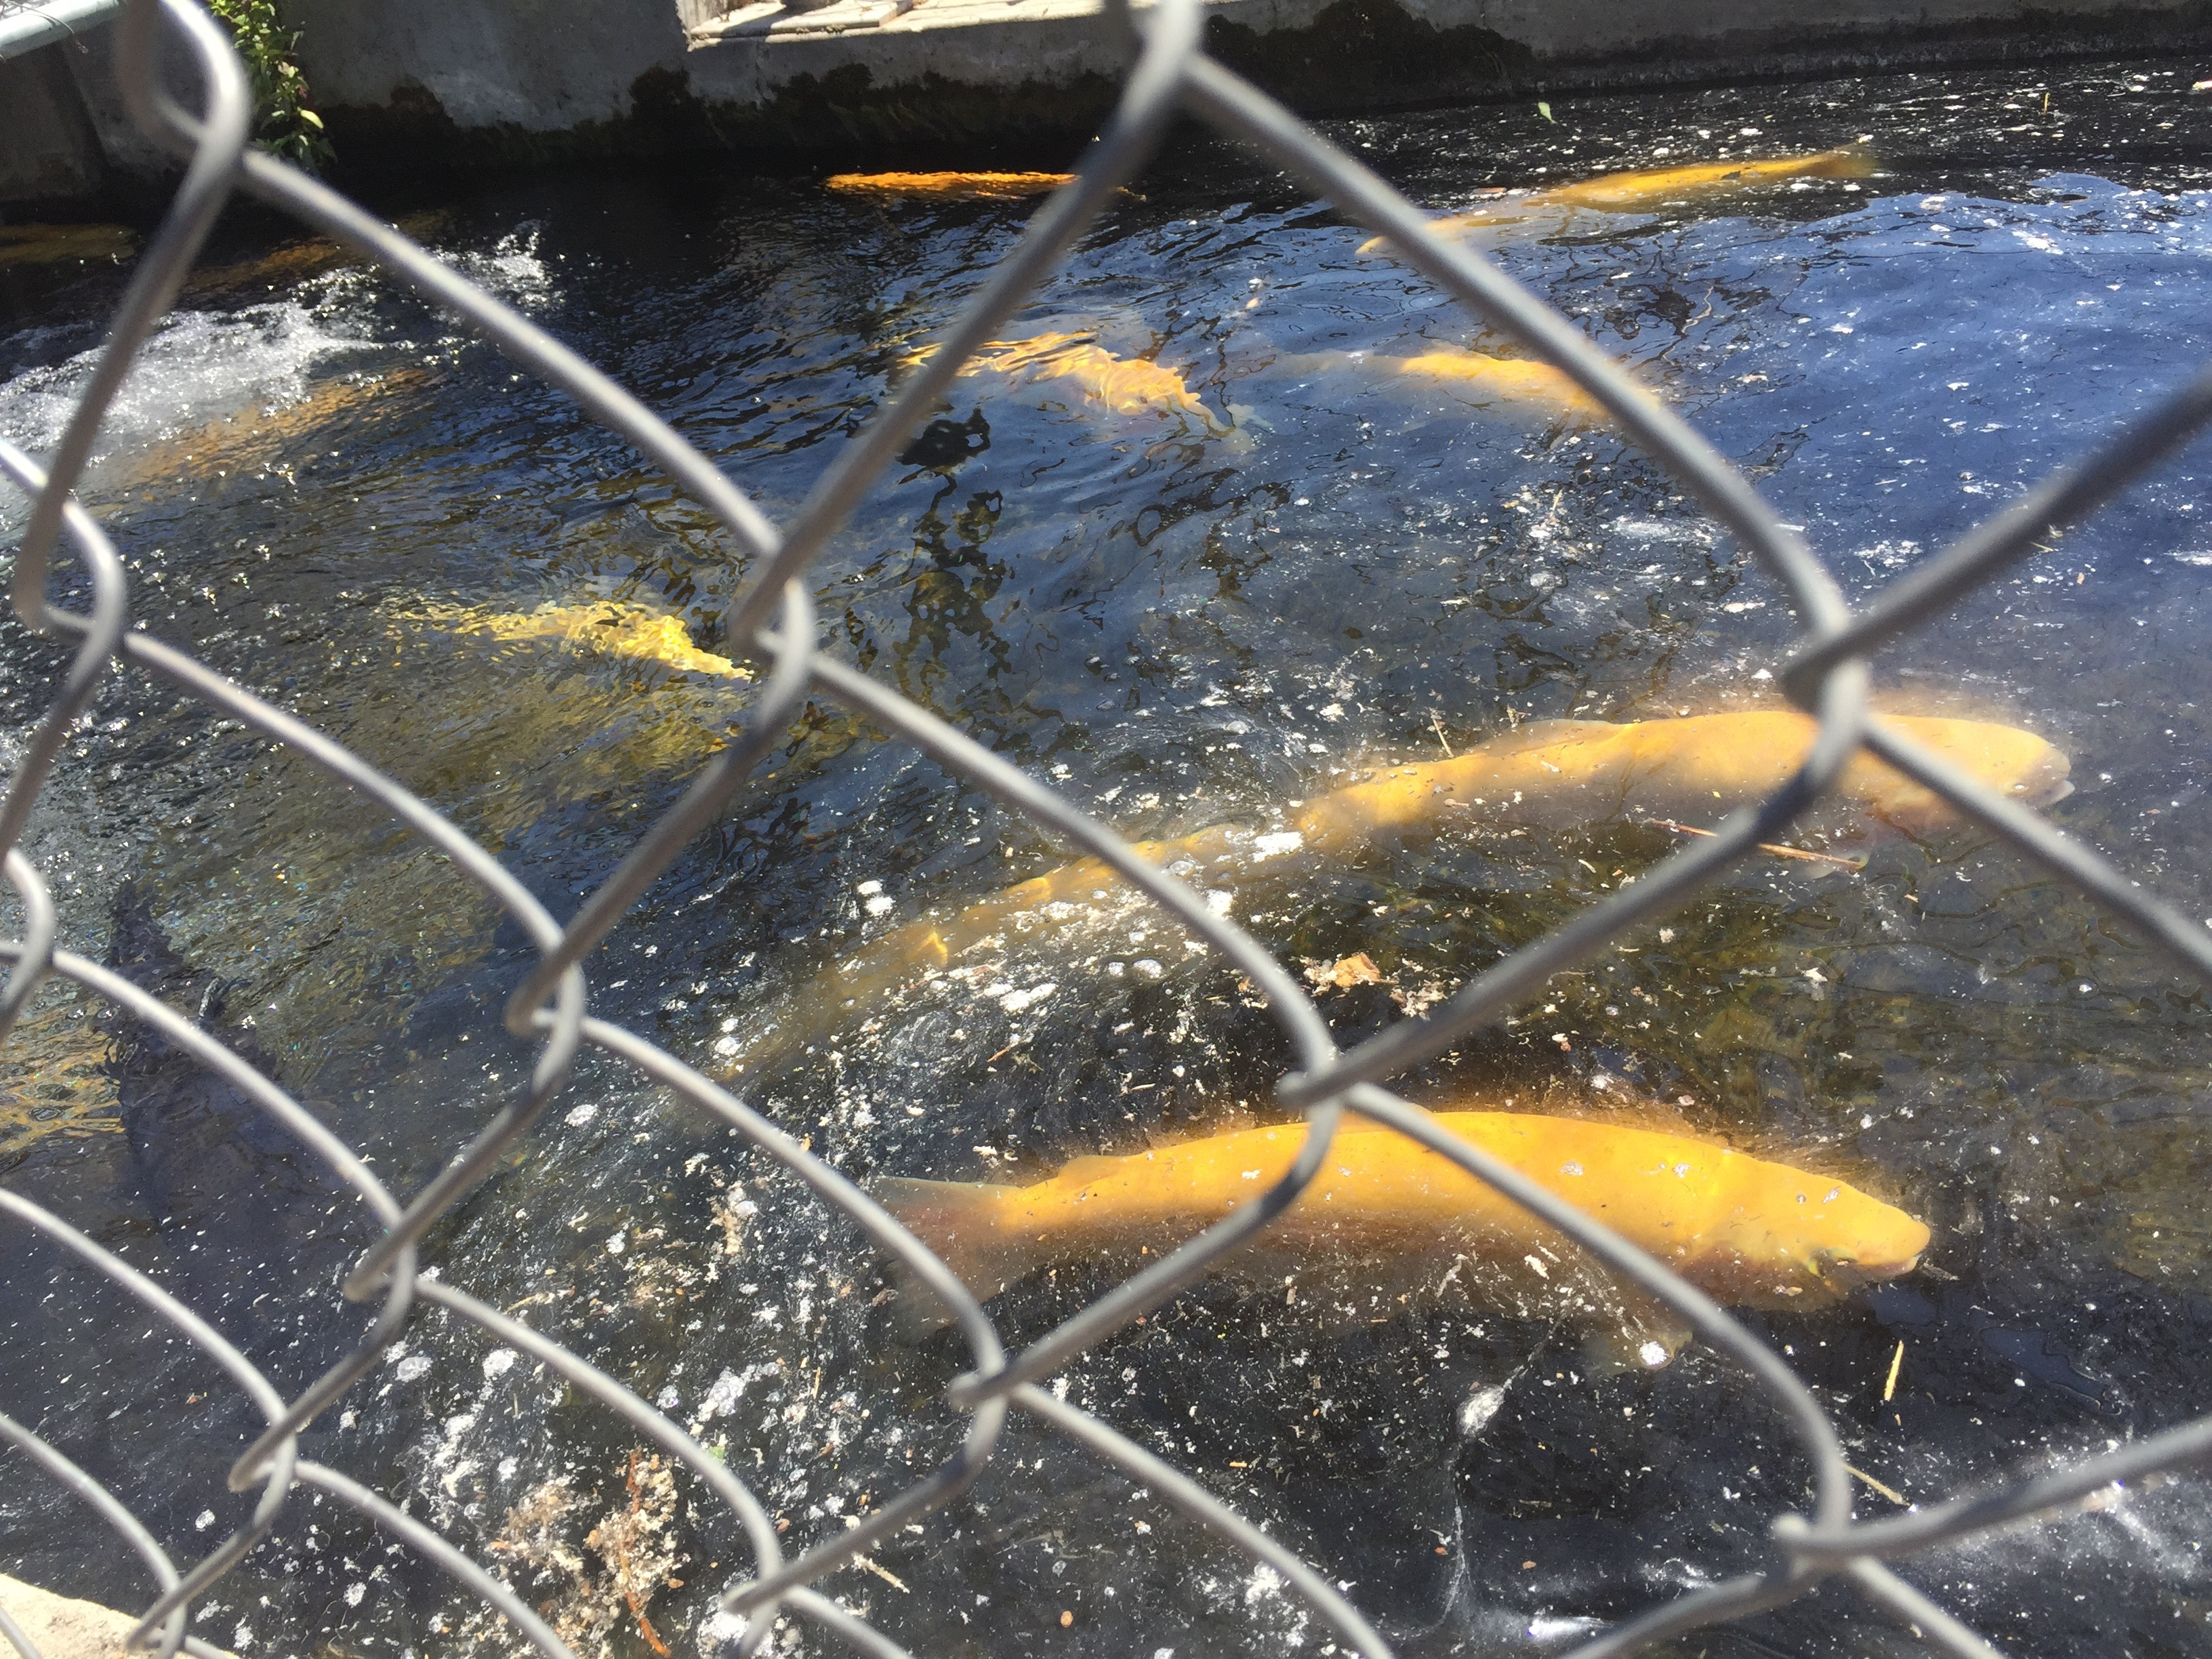 Hagerman Fish Hatchery show pond fish run with yellow rainbow trout tight shot June 2015